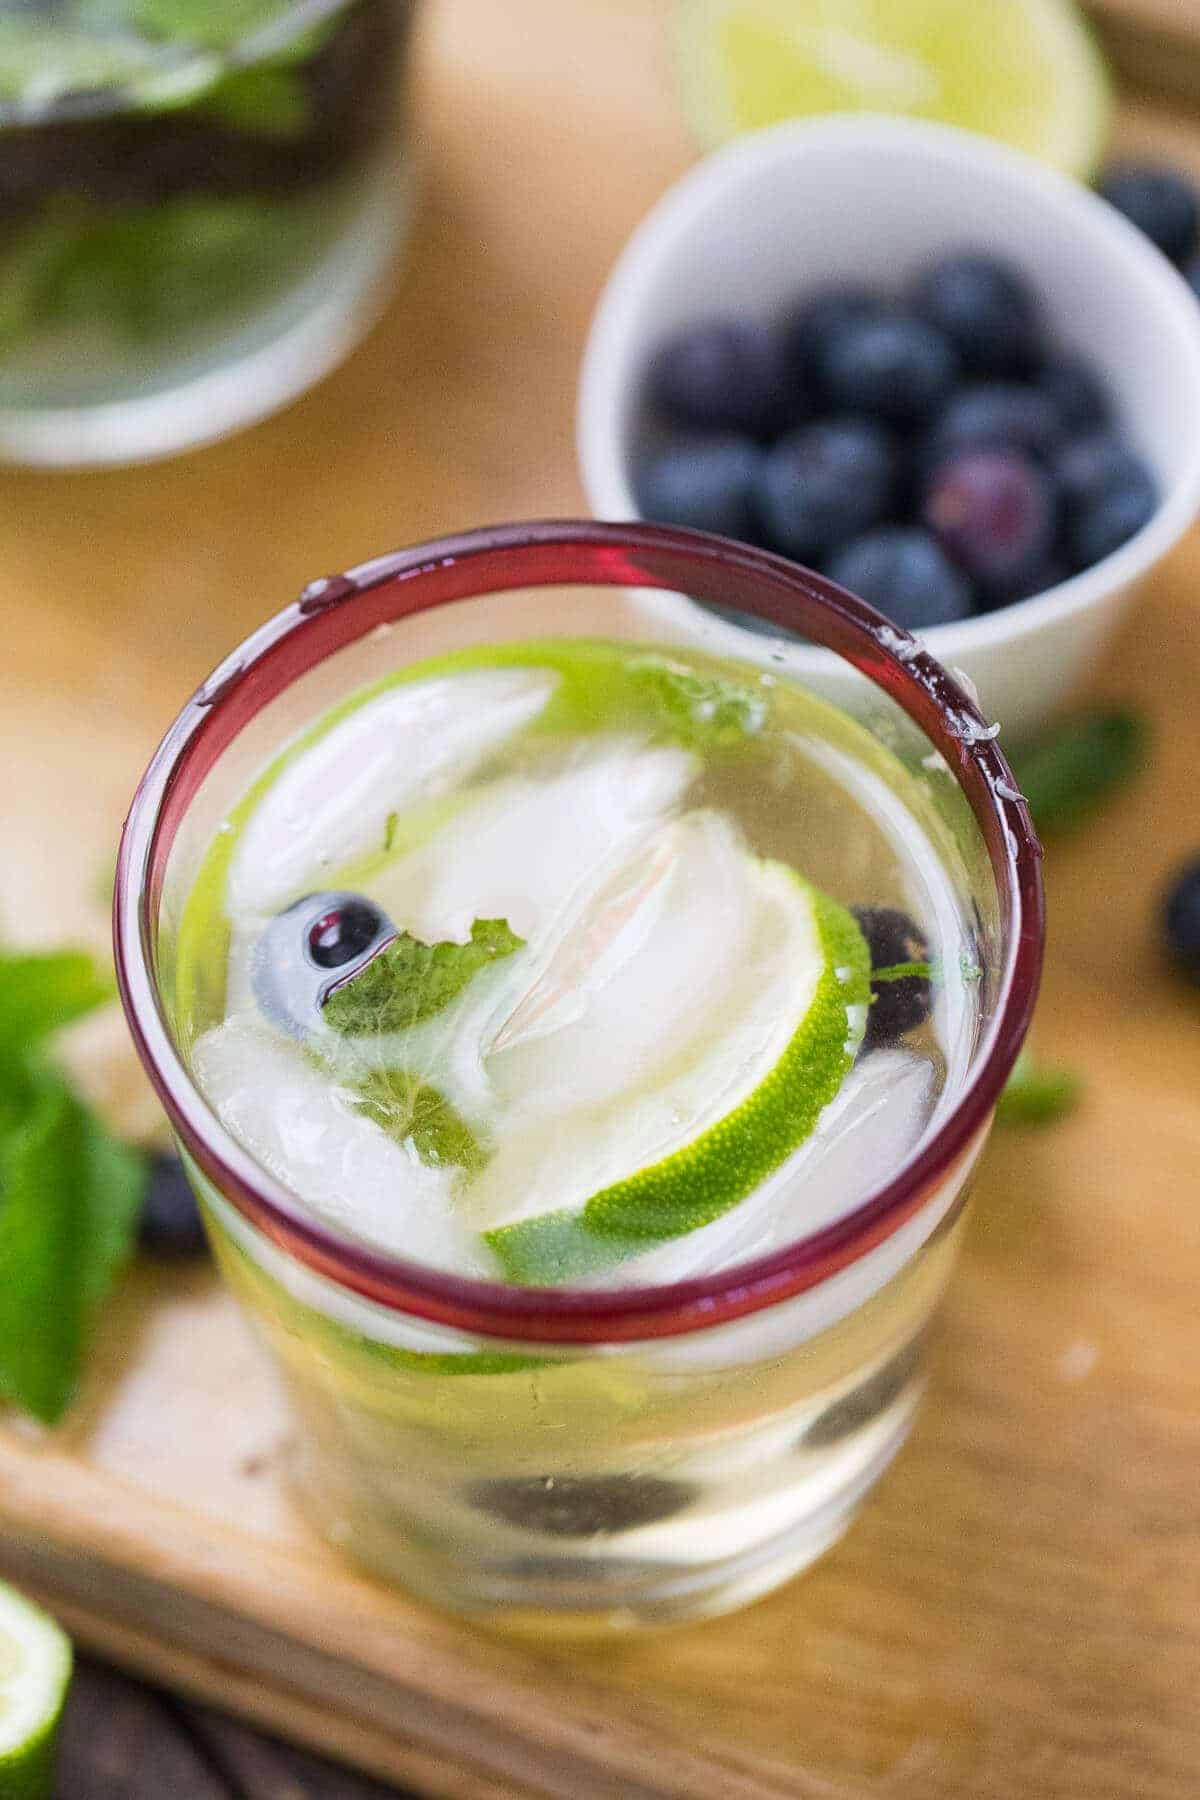 Glass of a homemade Champagne Blueberry Mojito with ice, limes and blueberries.